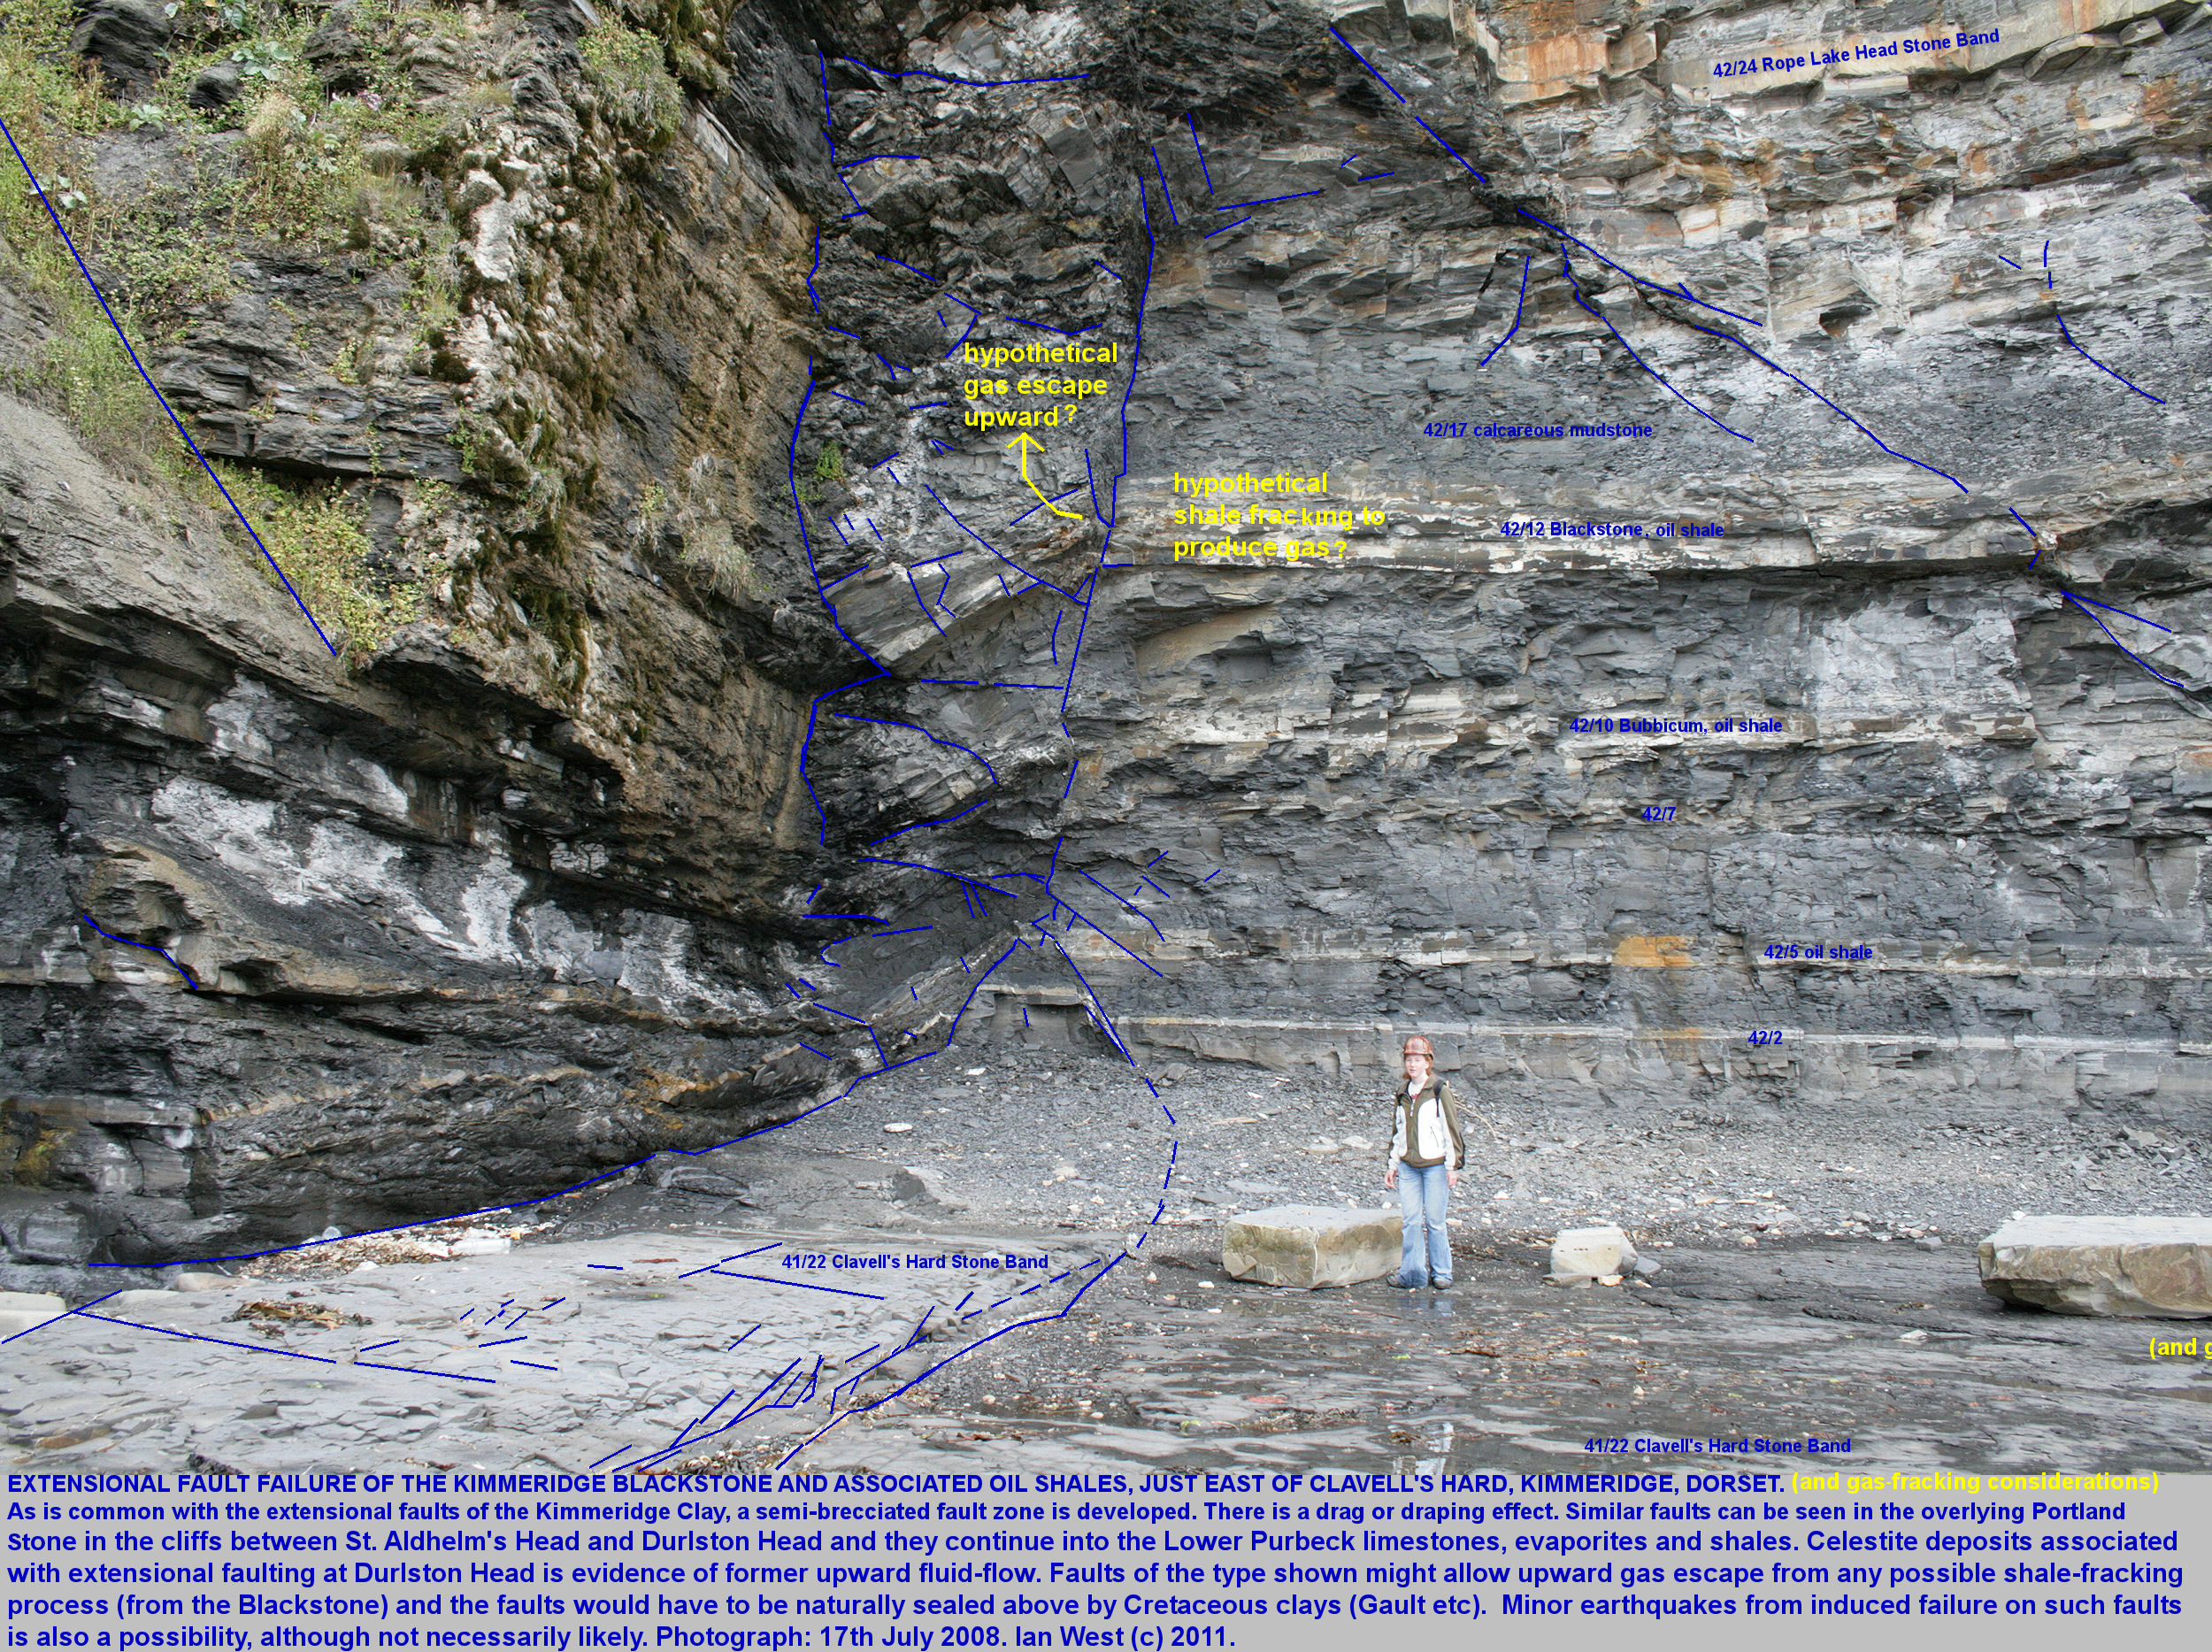 fracking affect and open shale rock Fracking fluid, chemicals and sand needed to fracture the rock and shale small explosives are used to open up the bedrock of state and federal advisory committees tasked to consider the potential environmental and health effects of fracking in the marcellus shale region.